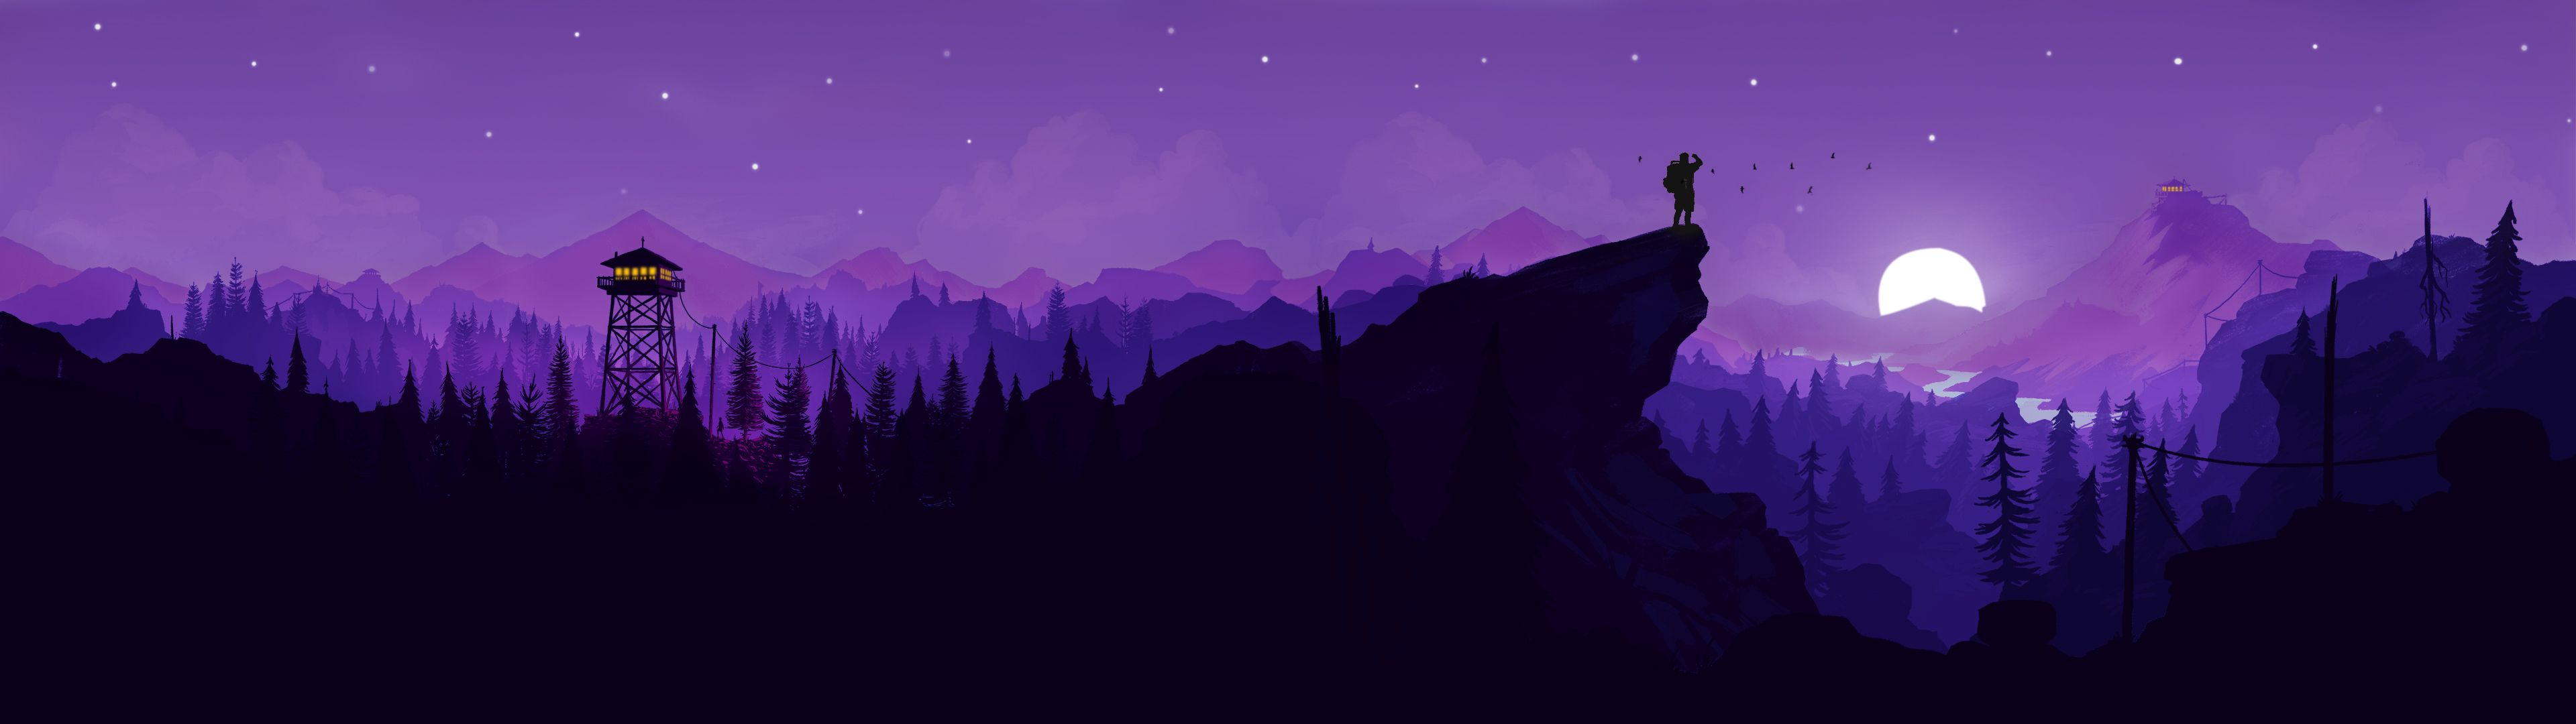 Played Around With The Firewatch Art And Made This Pretty Cool Dual Monitor Wallpaper 3840x1 Dual Monitor Wallpaper Really Cool Wallpapers 3840x1080 Wallpaper